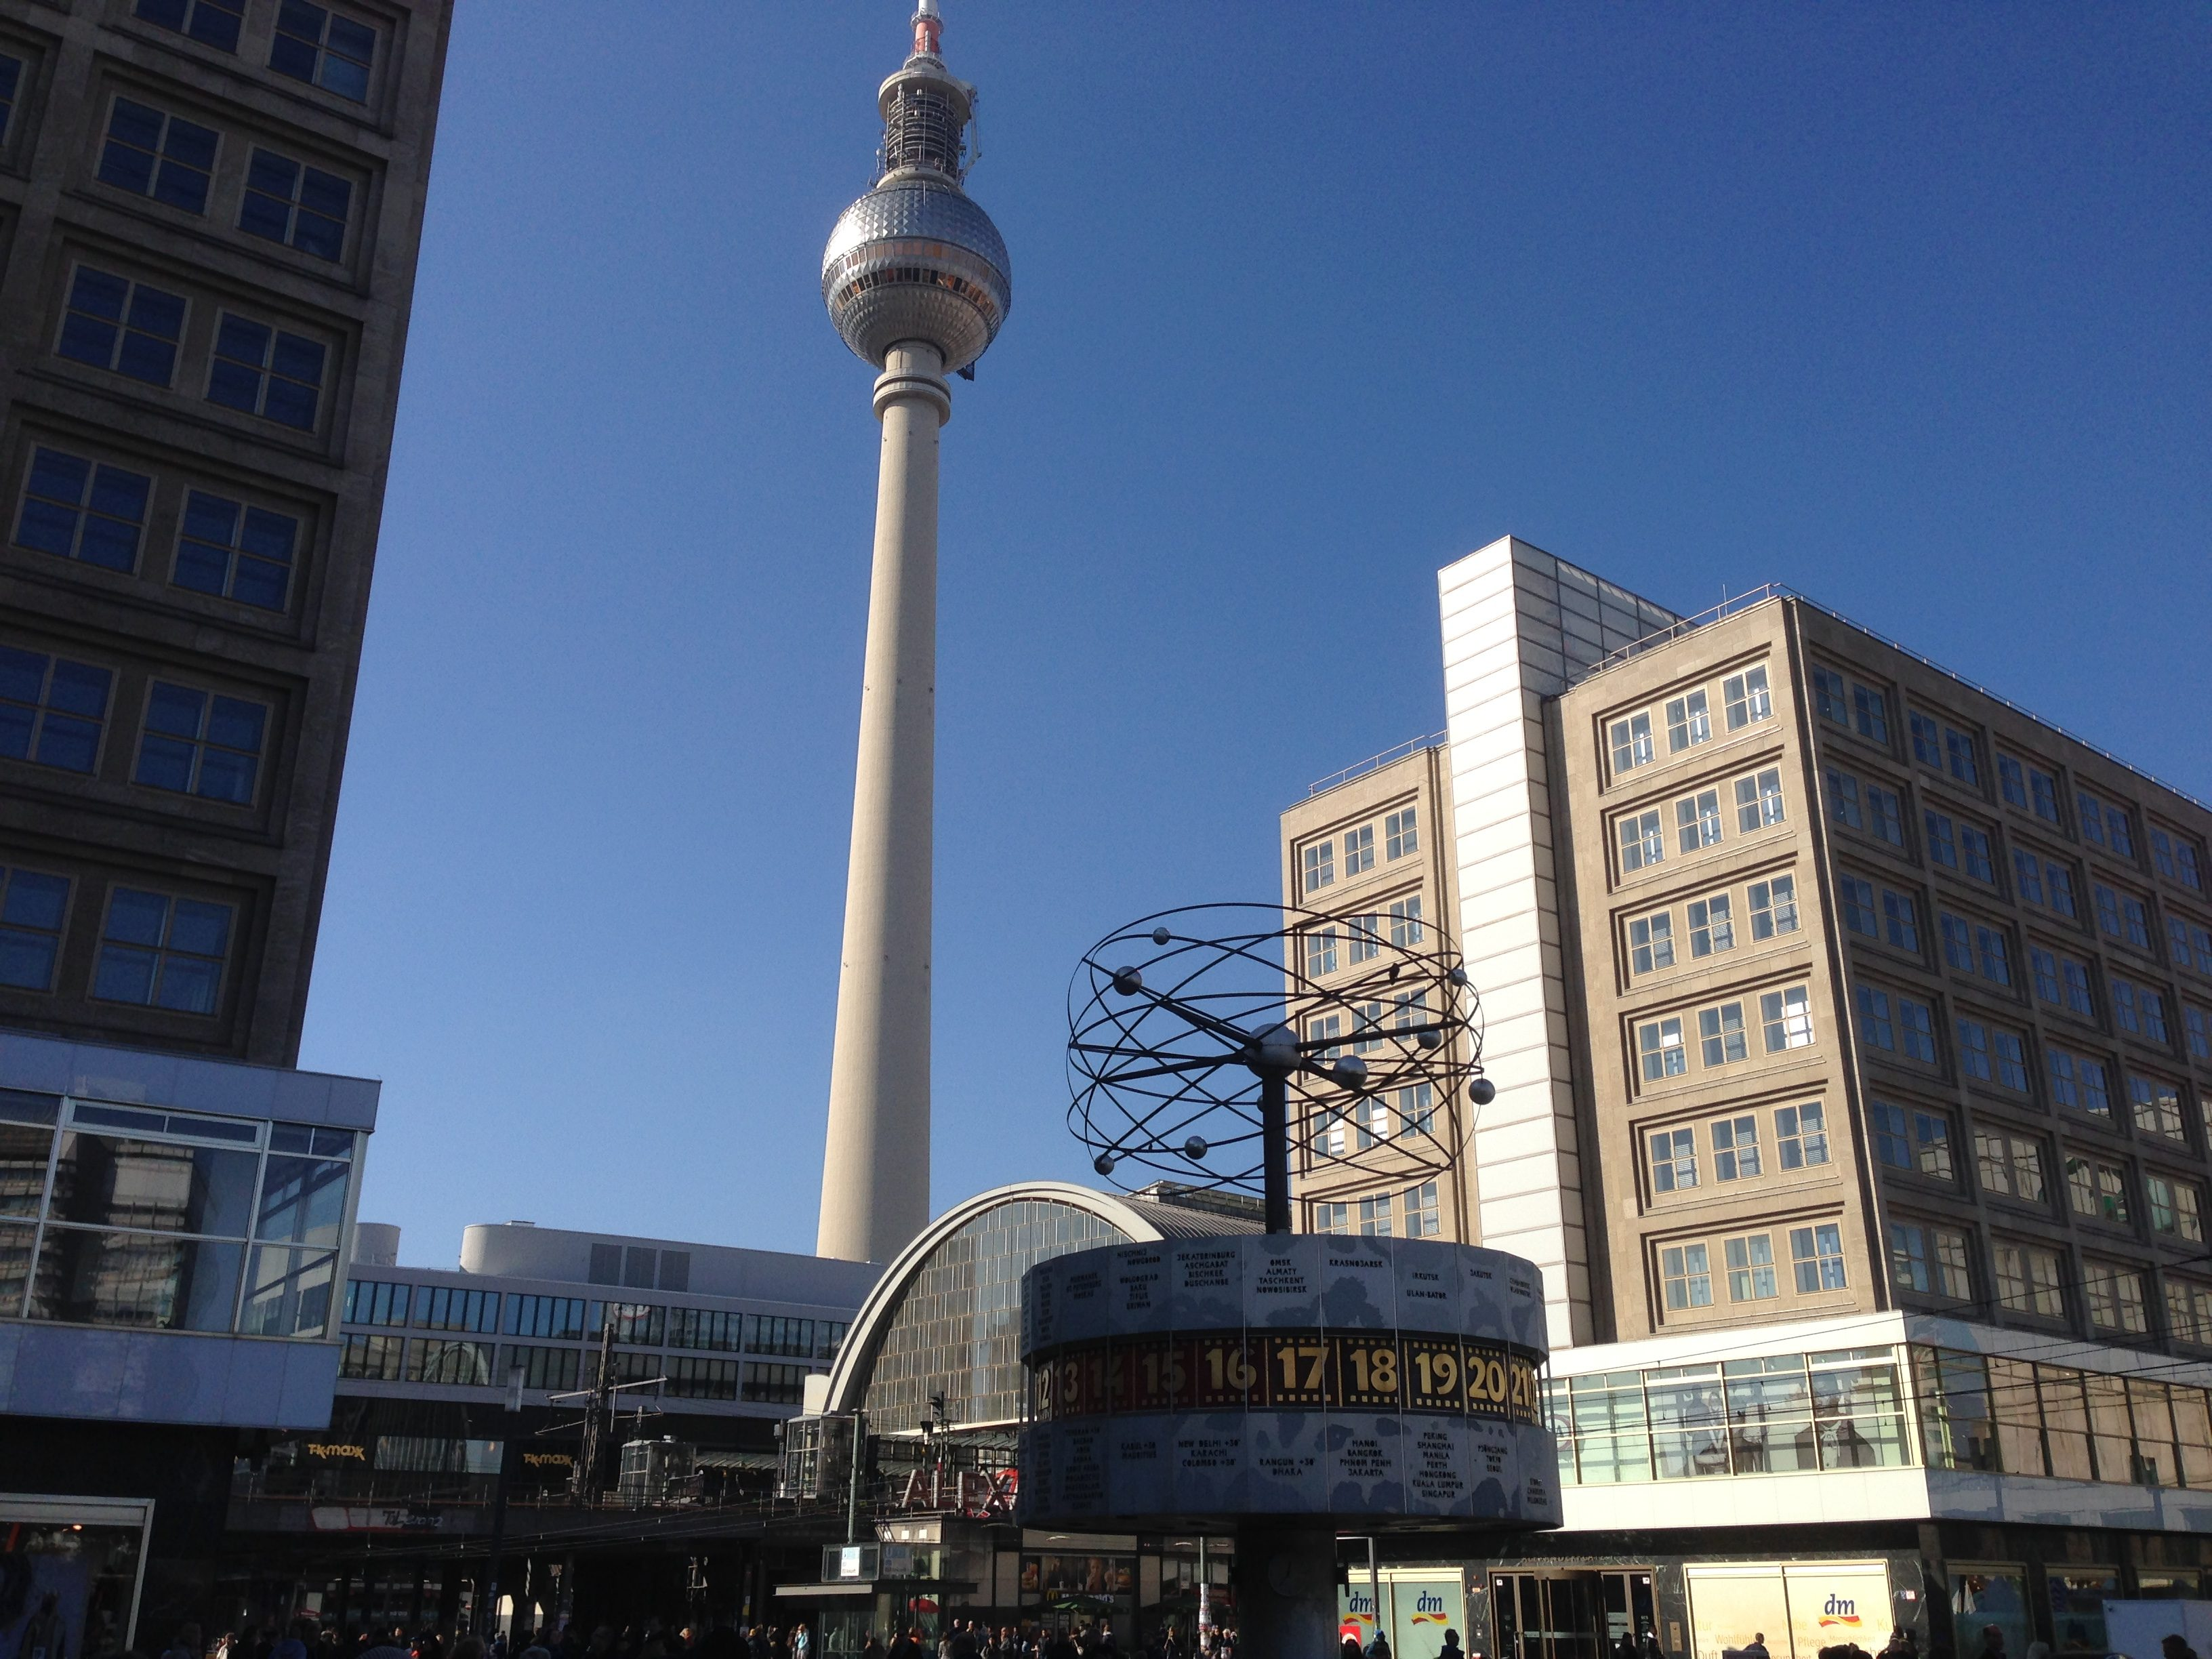 With its giant TV Tower and world clock, when in Berlin all paths will somehow lead to Alexanderplatz.